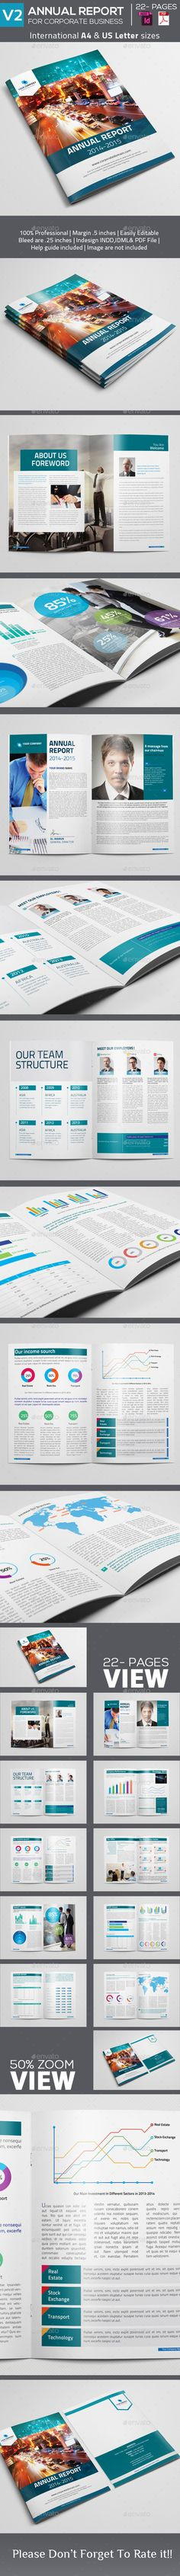 Annual Report - 22 pages V2 - Corporate Brochures